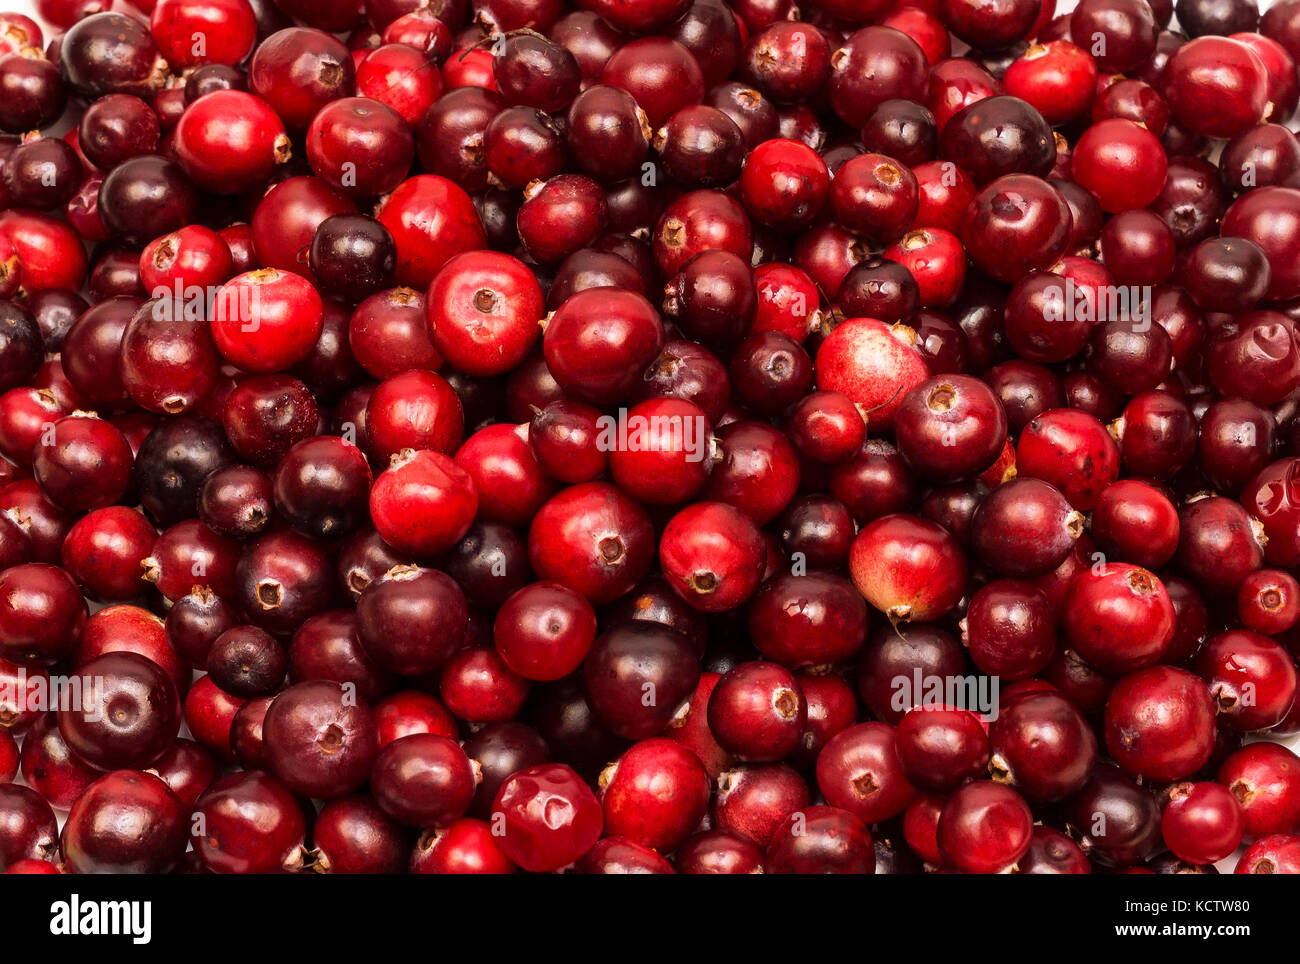 Red ripe cranberry berries in large quantities - Stock Image